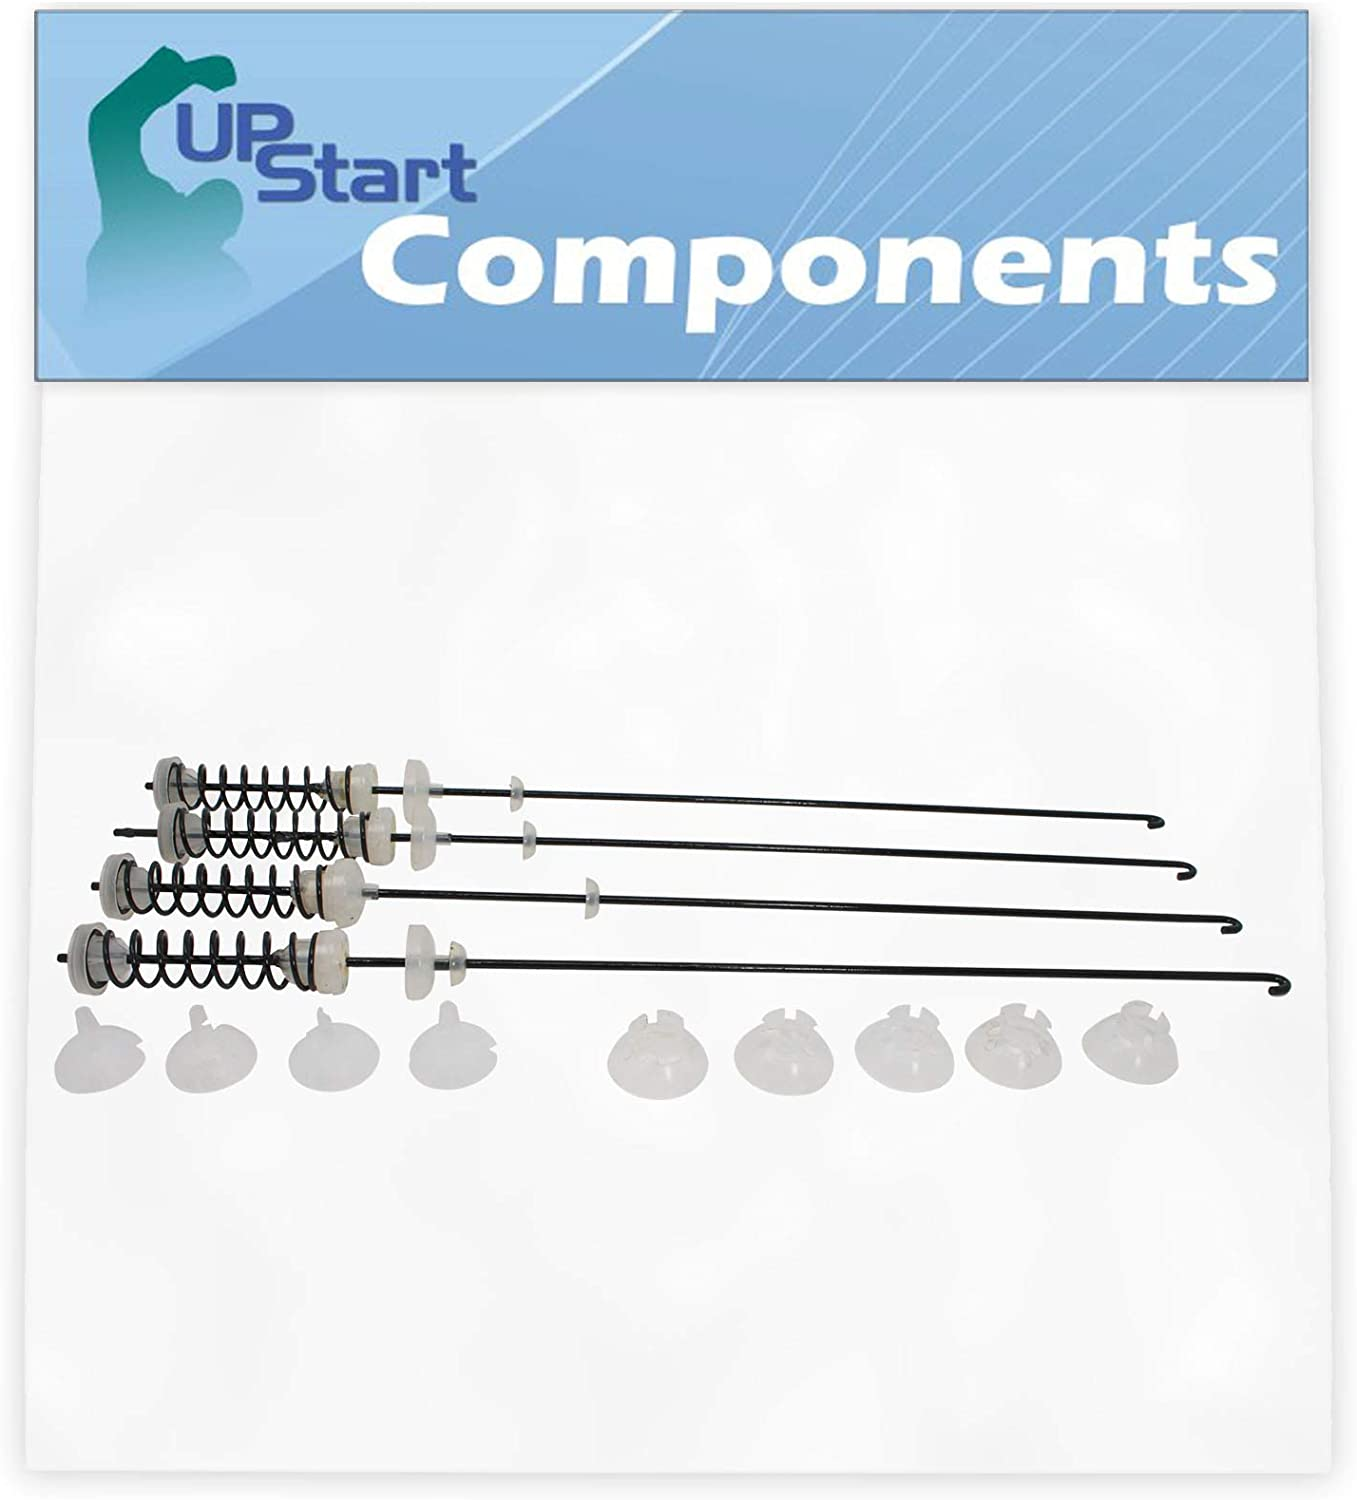 4-Pack W10780048 Washer Suspension Kit Replacement for Kenmore/Sears 110.20022013 Washer - Compatible with W10257088 Washing Machine Suspension Rods